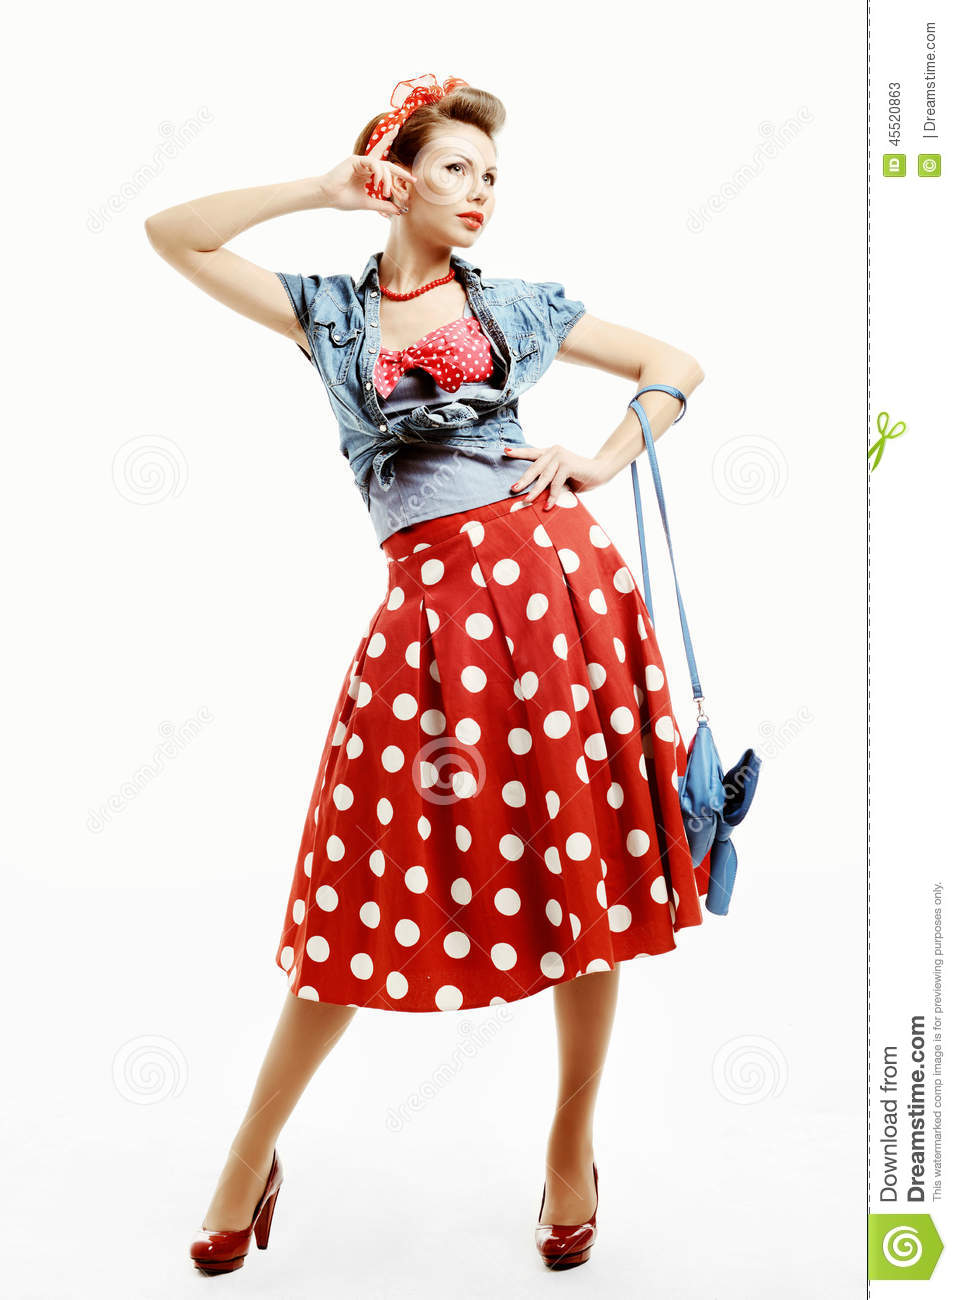 pin up young woman in vintage american style with a clutch. Black Bedroom Furniture Sets. Home Design Ideas